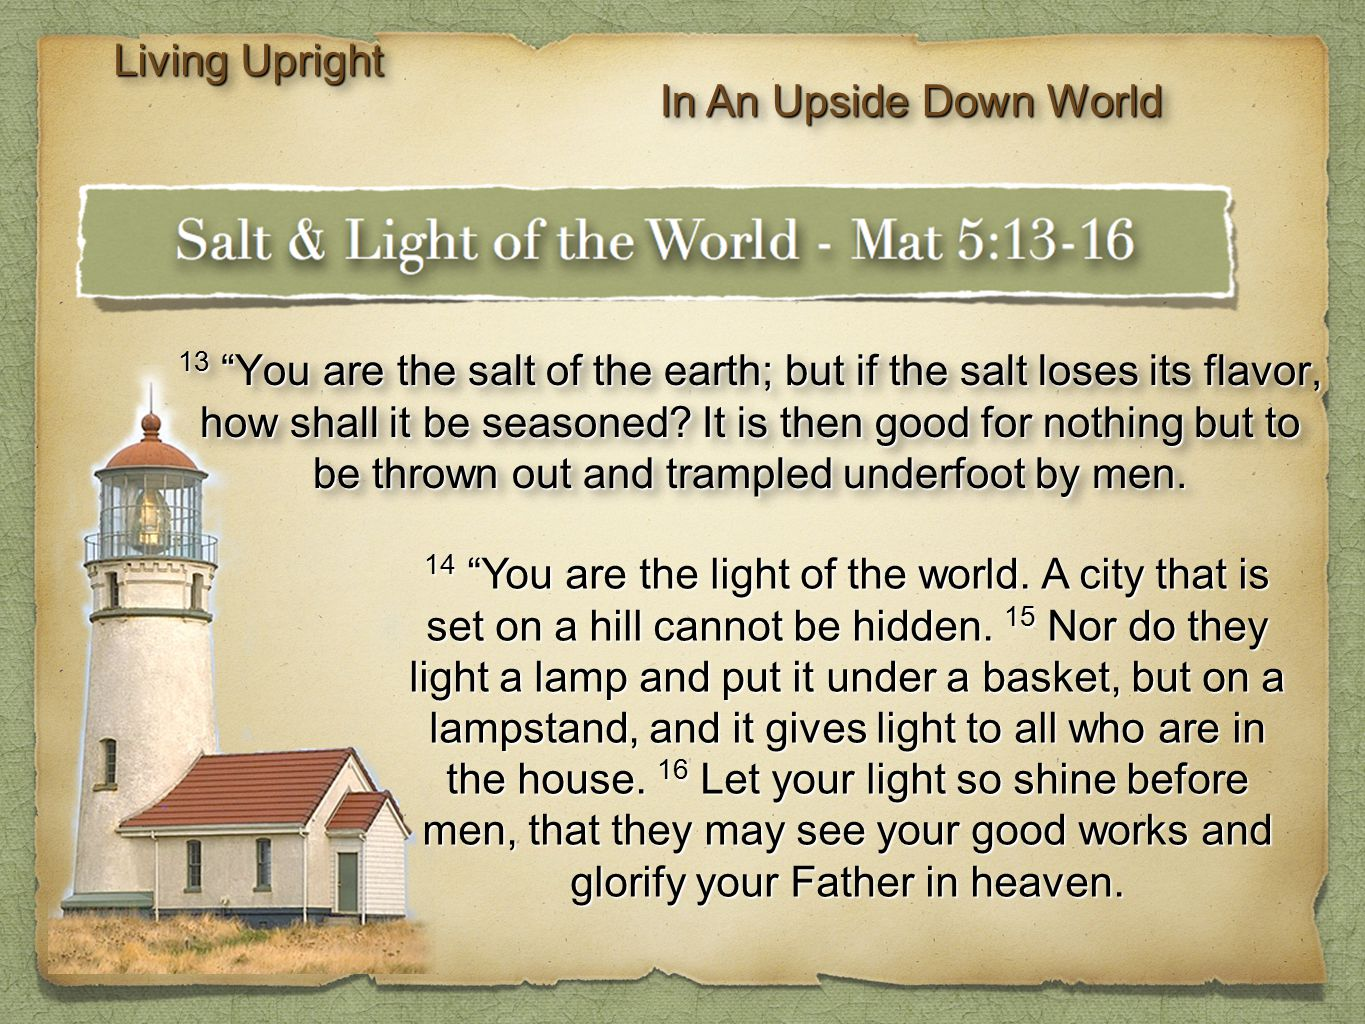 "13 ""You are the salt of the earth; but if the salt loses its flavor, how shall it be seasoned? It is then good for nothing but to be thrown out and tr"